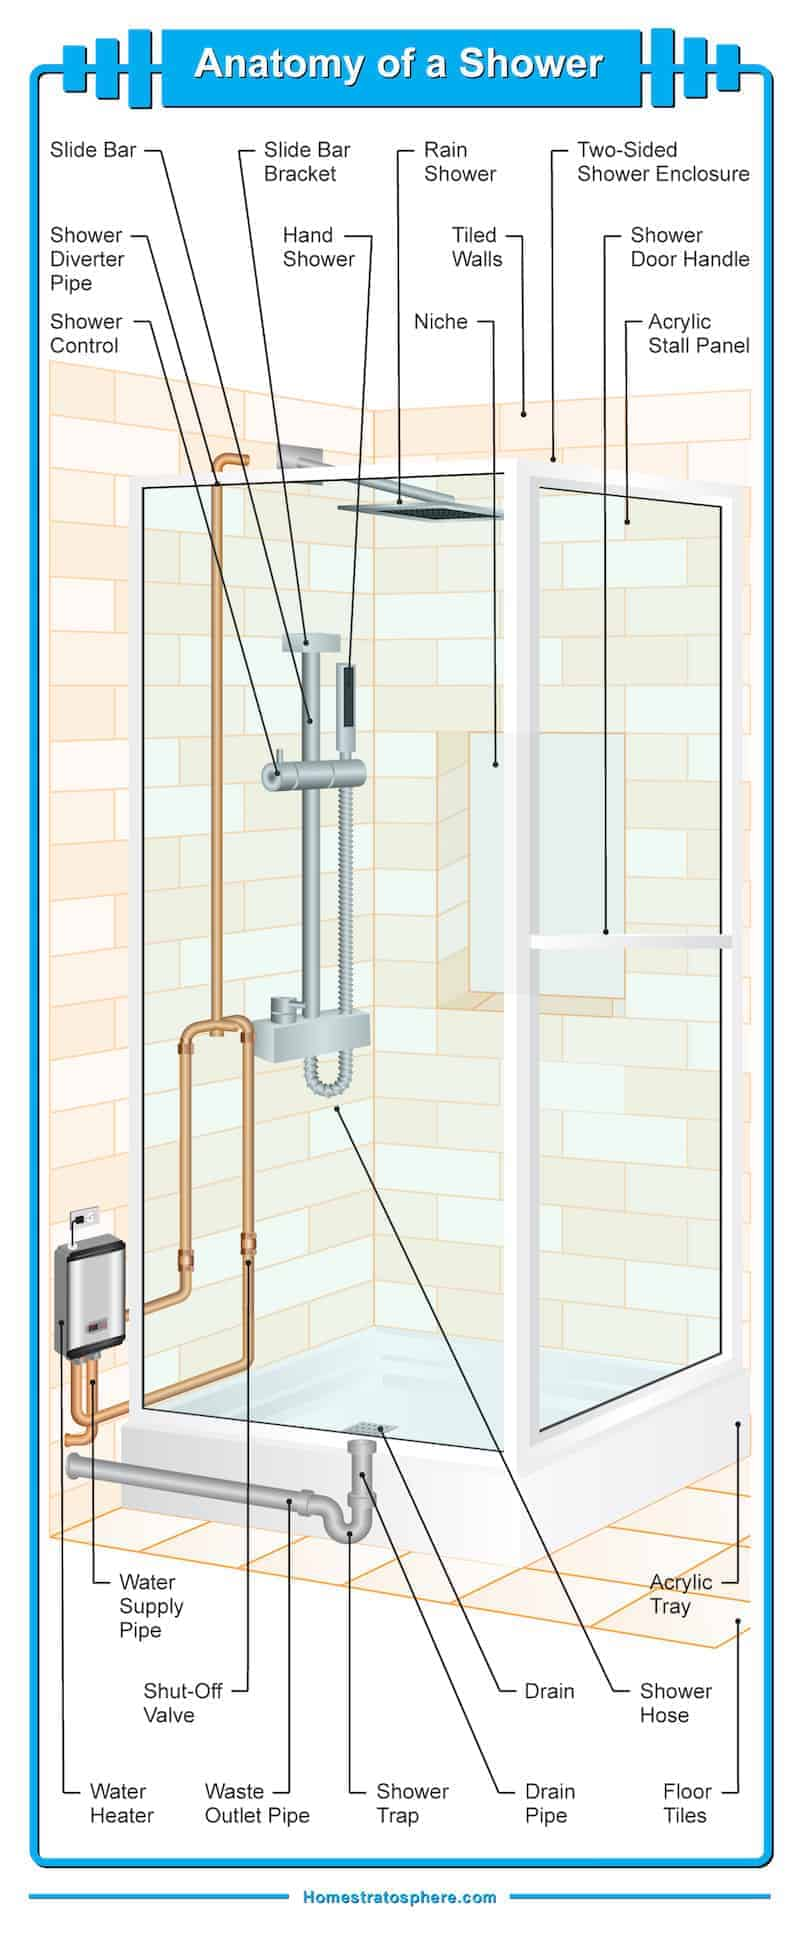 Diagram illustrating the many different parts of a bathroom shower